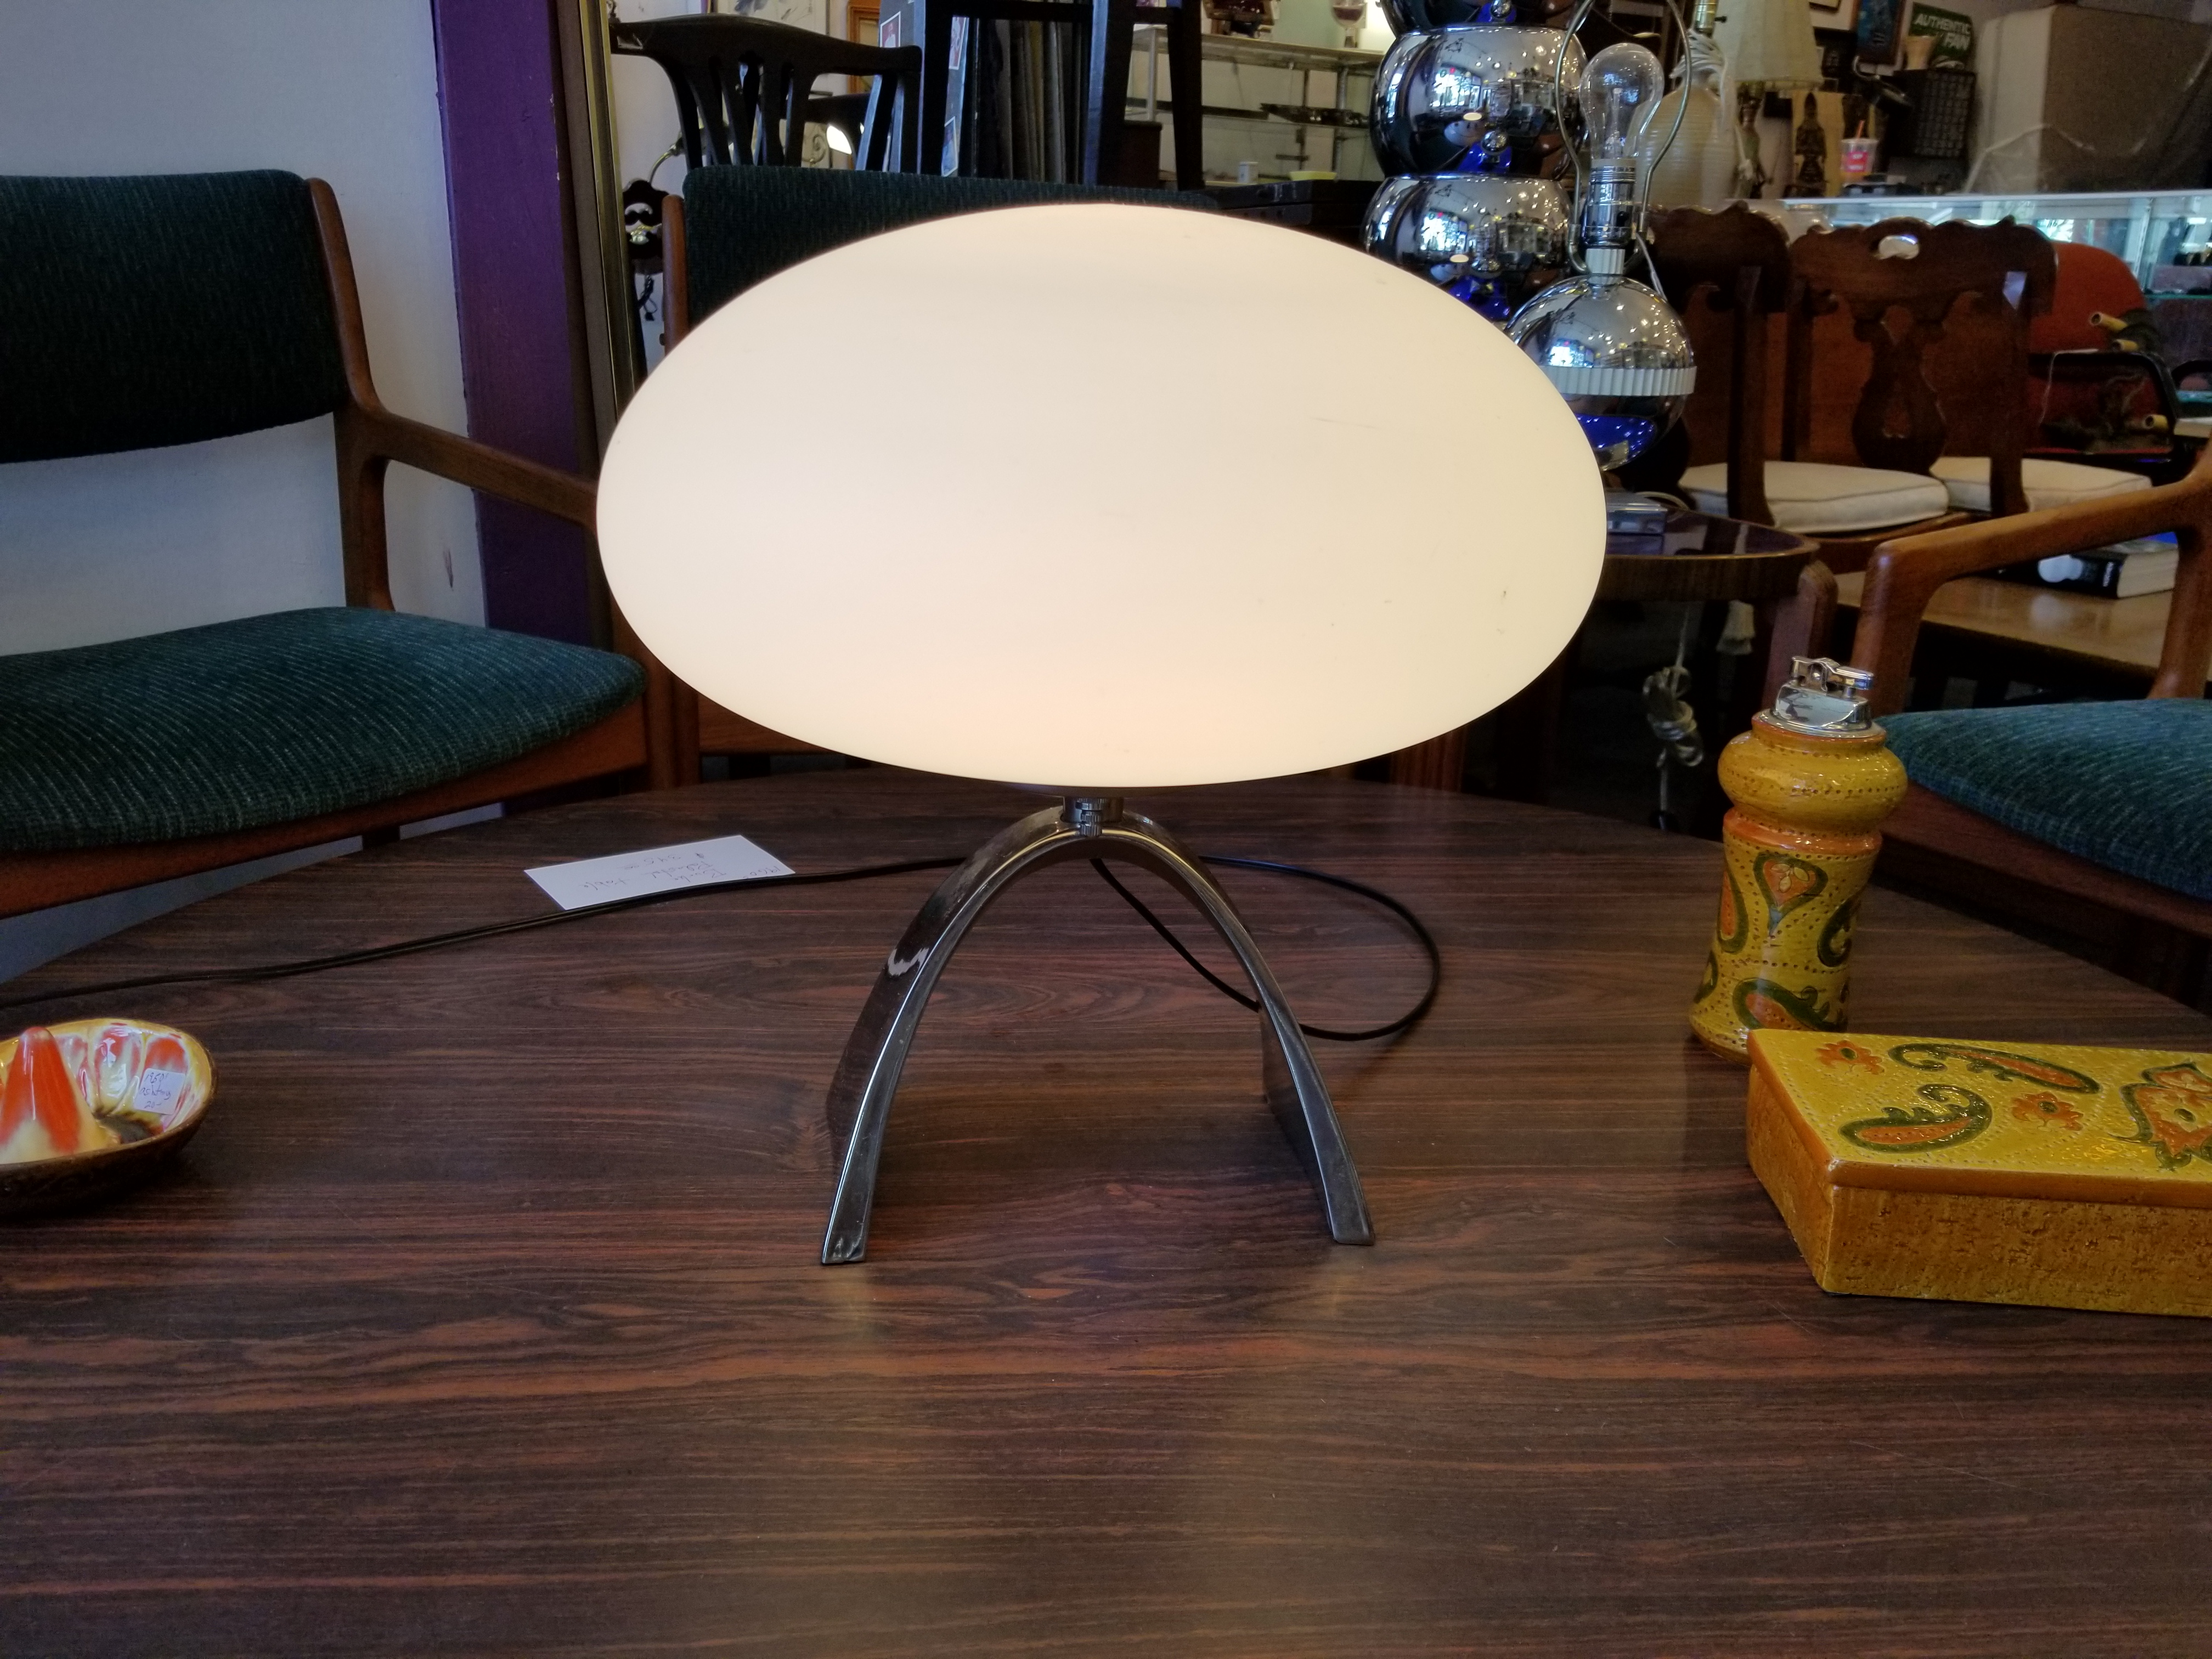 Antique Store Vintage Lighting Repair Restoration Furniture Rewiring Old Lamp Call Today To Learn More About Our Ever Expanding Inventory